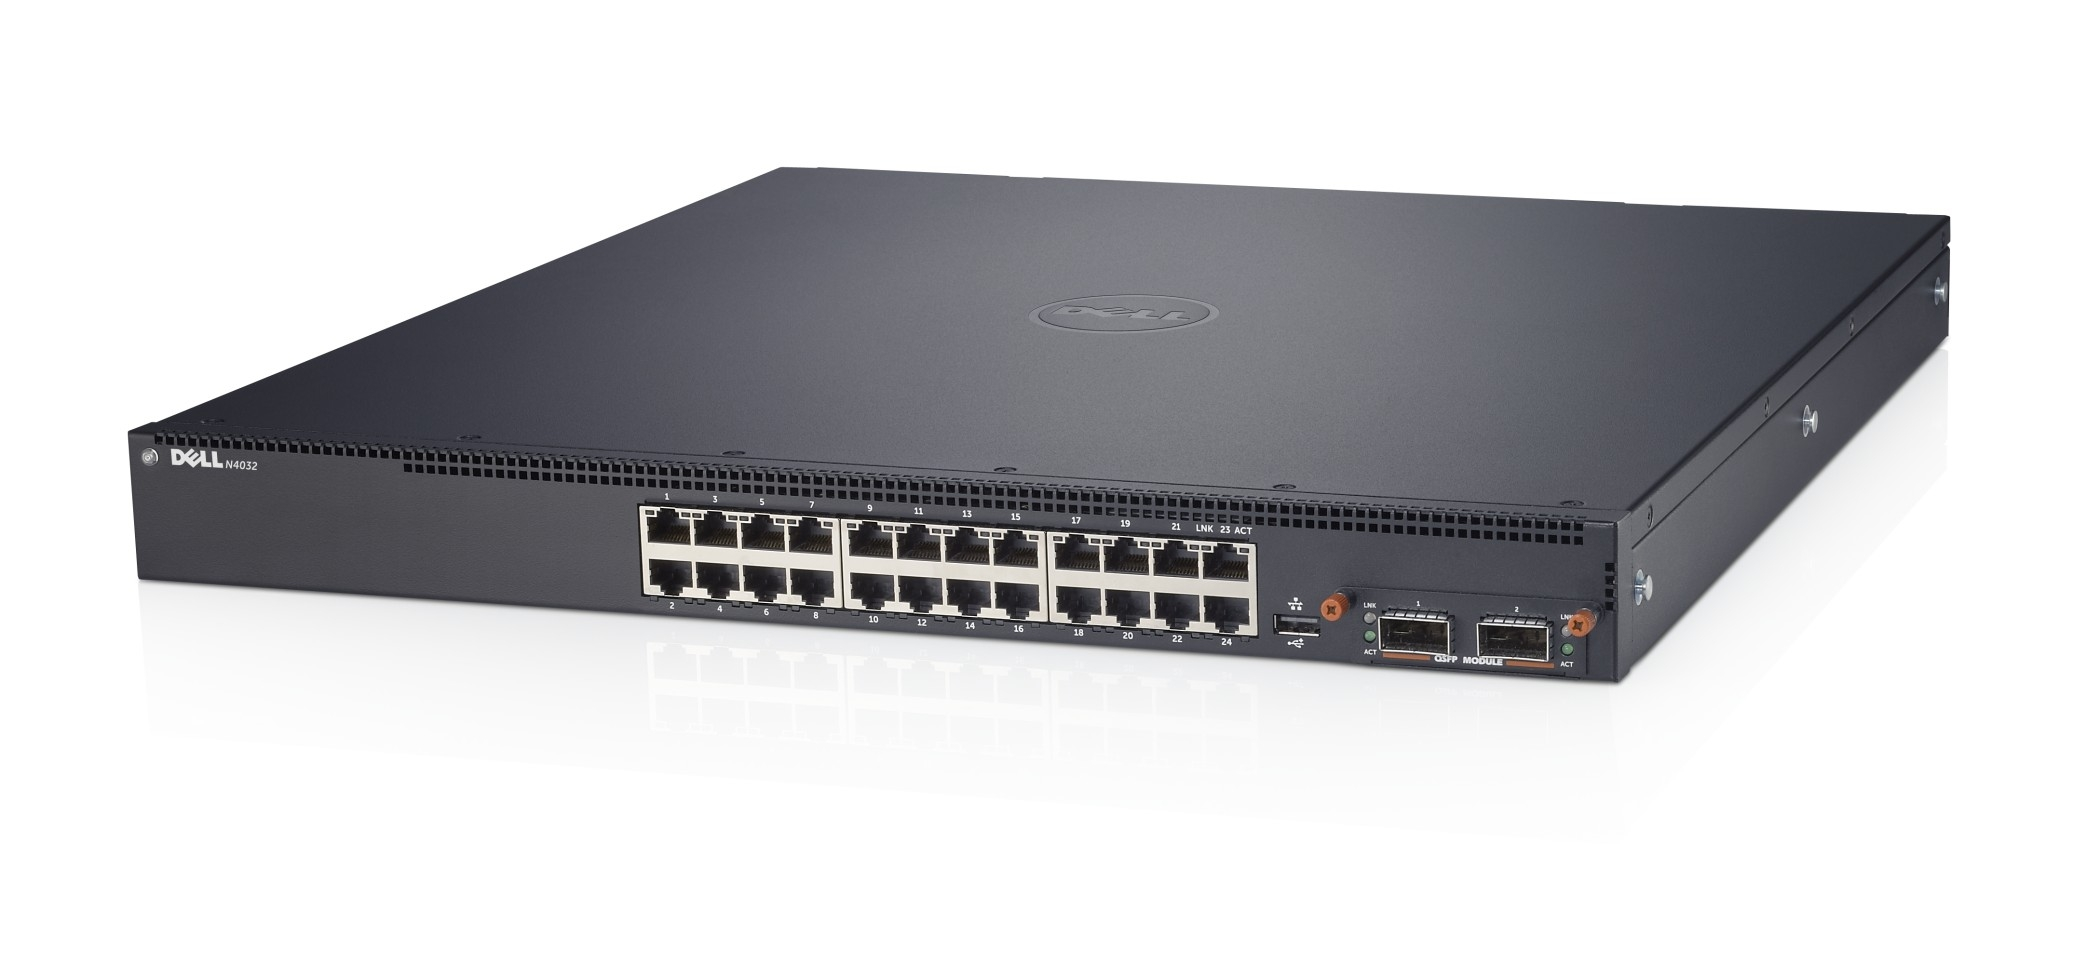 DELL Power Connect N4032F1 DELL JAKARTA